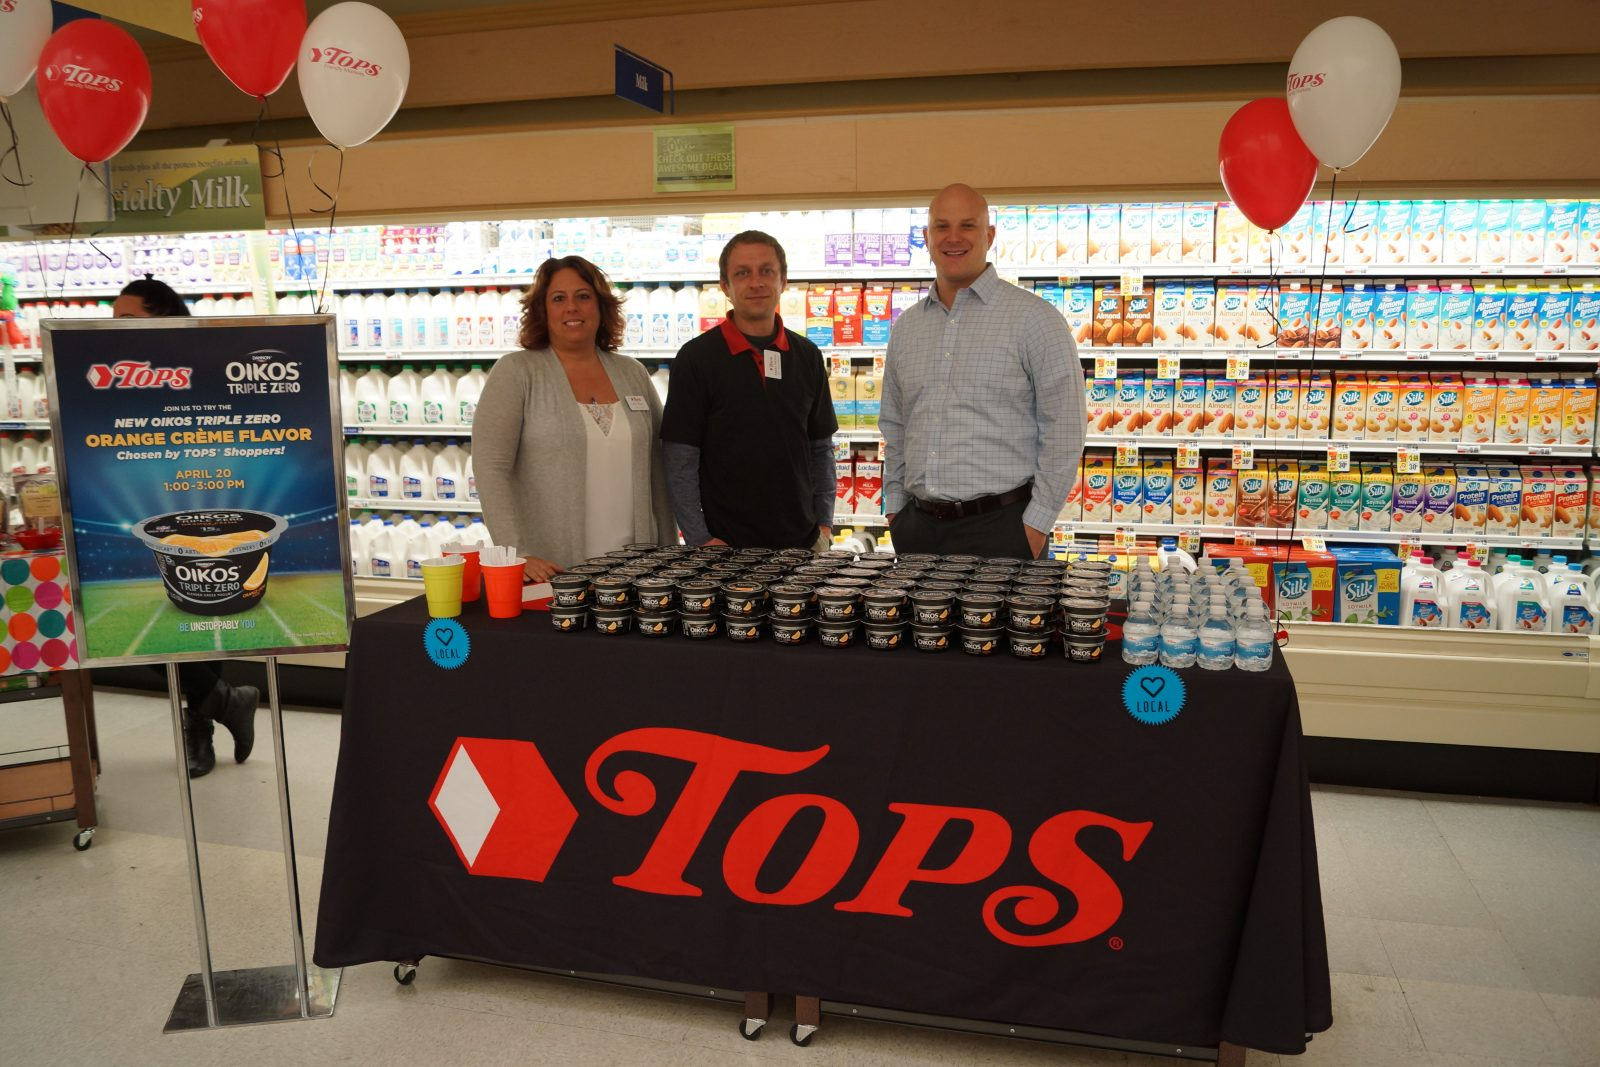 Kris Ponzi, Store Manager; and Mario Monte, Dairy/Frozen Manager,; both from Tops, at the Elmwood Avenue store. Matthew P. Geiger, Key Account Manager, Danone North America. (Contributed photo)